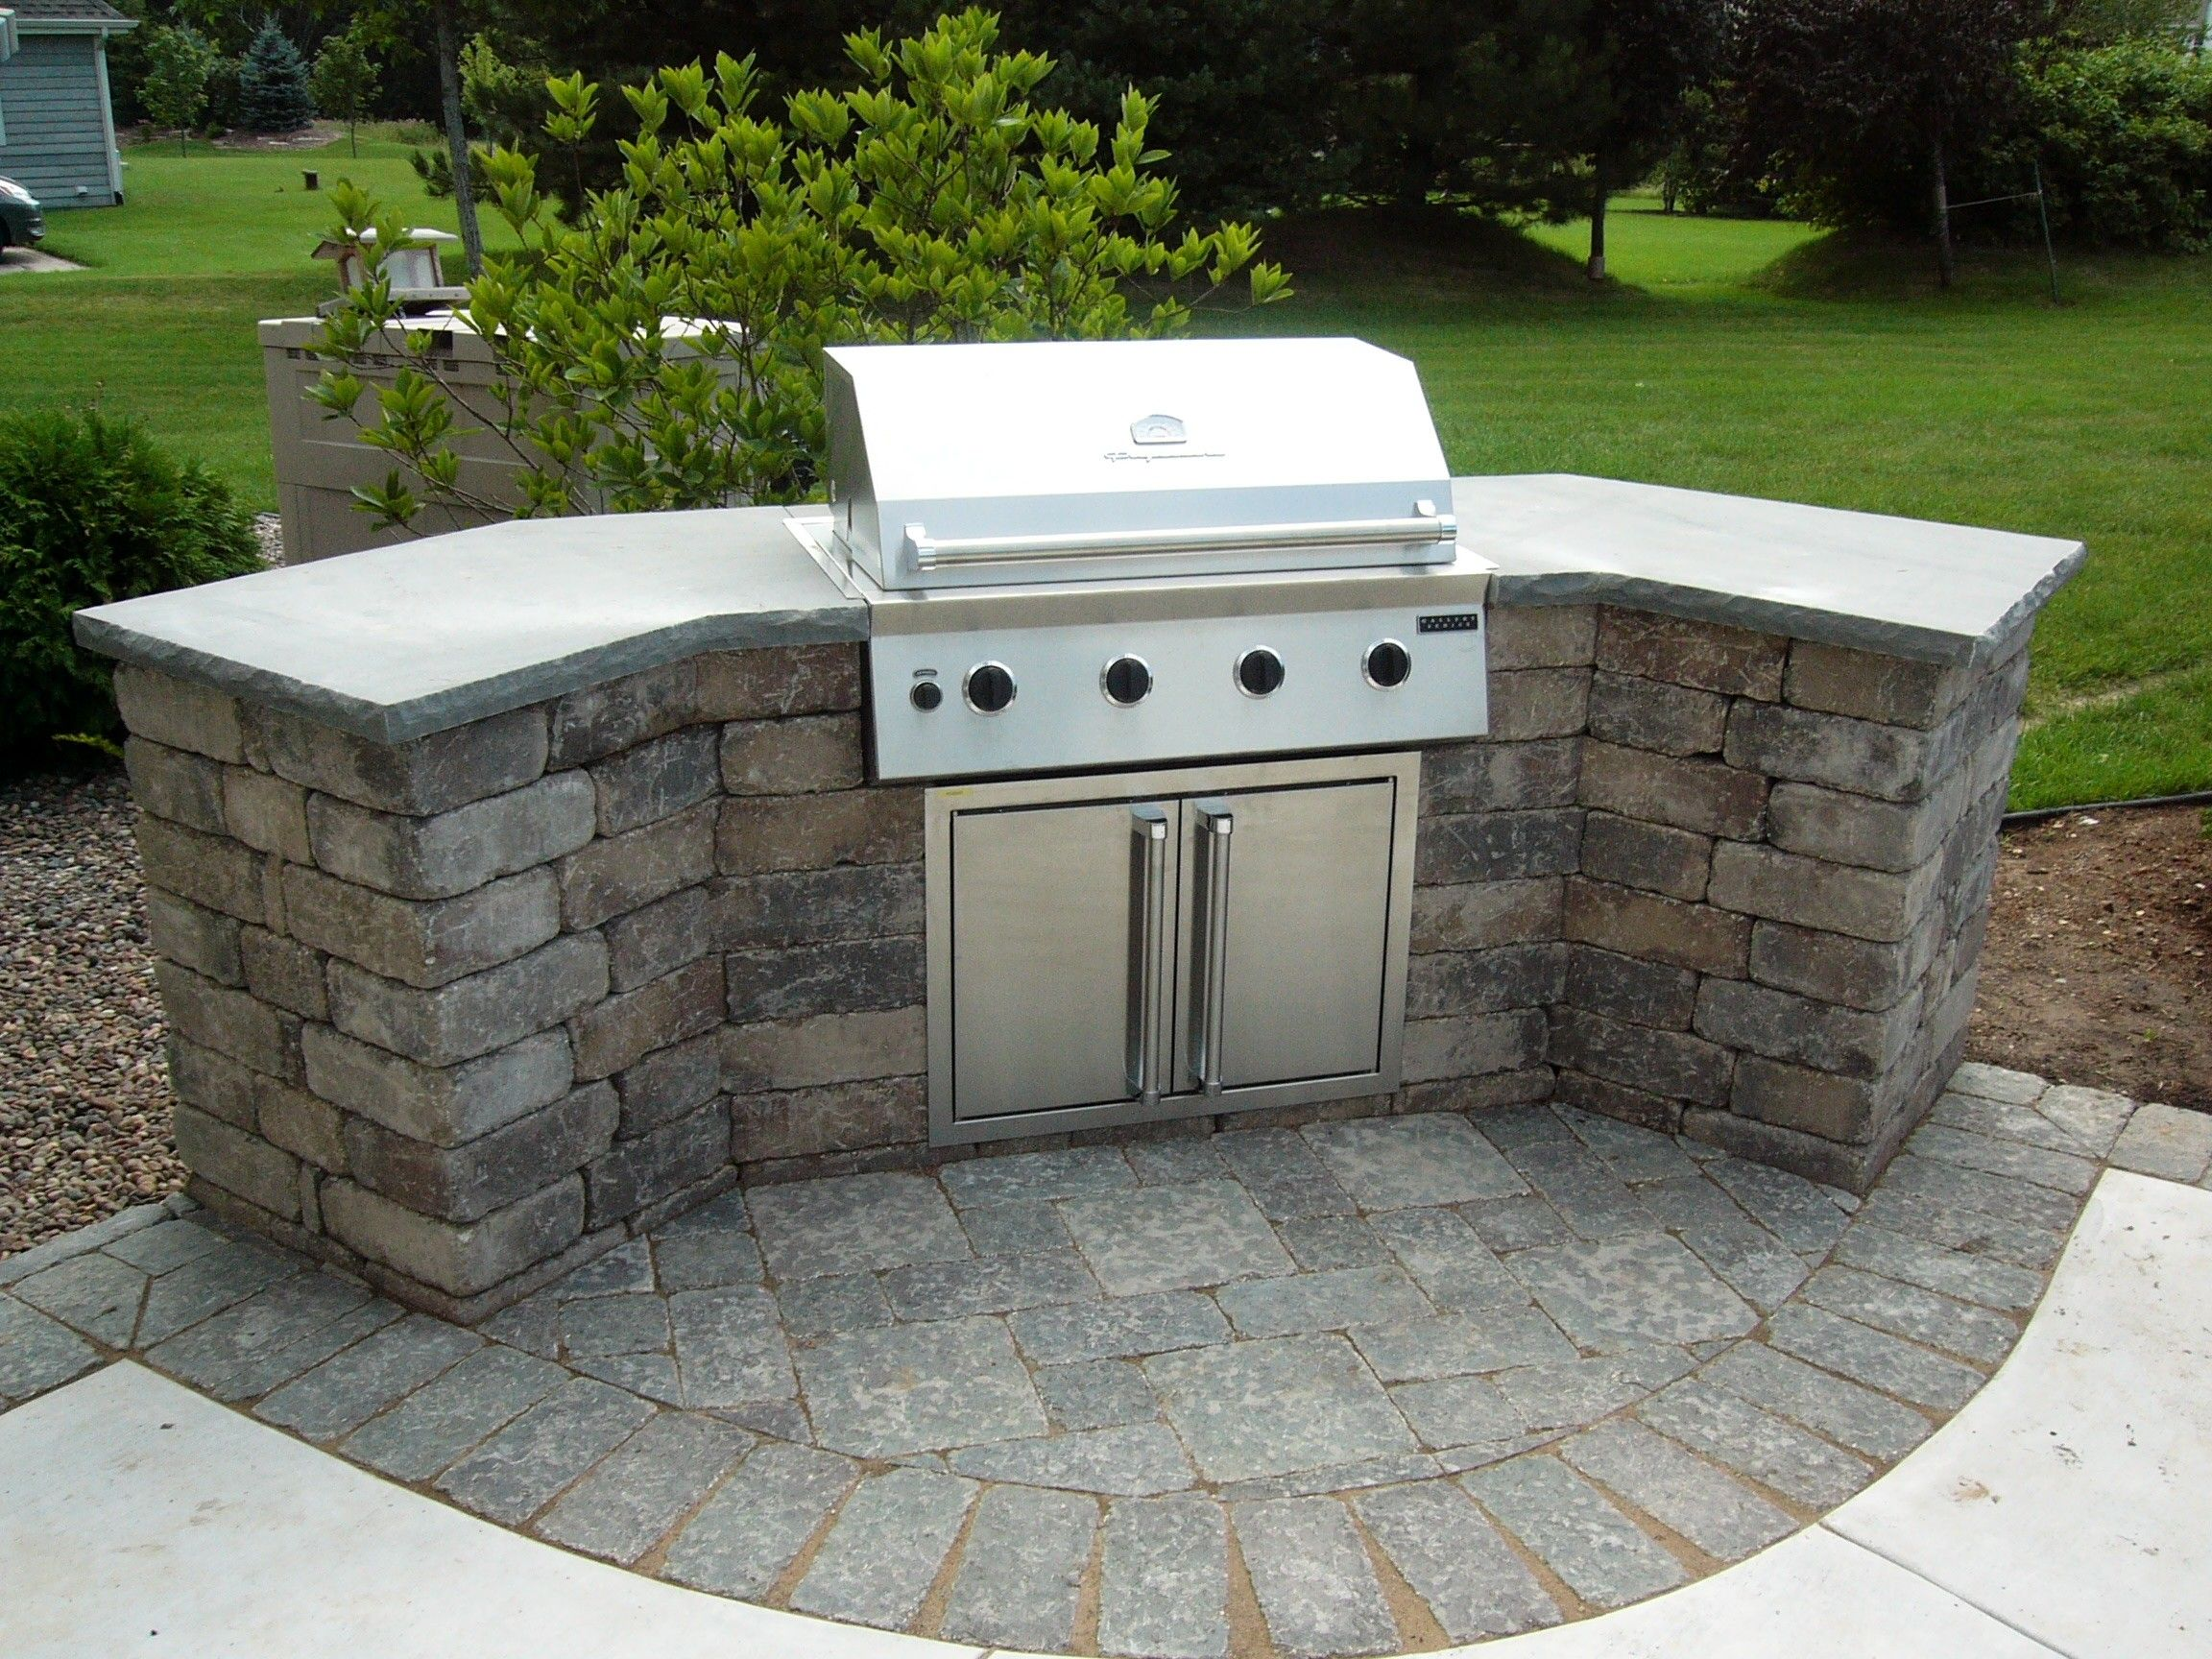 kitchen countertop materials Curved Stone Prefab Kitchen Island With Gray Concrete Countertop And Barbeque Grill On Backyard Garden